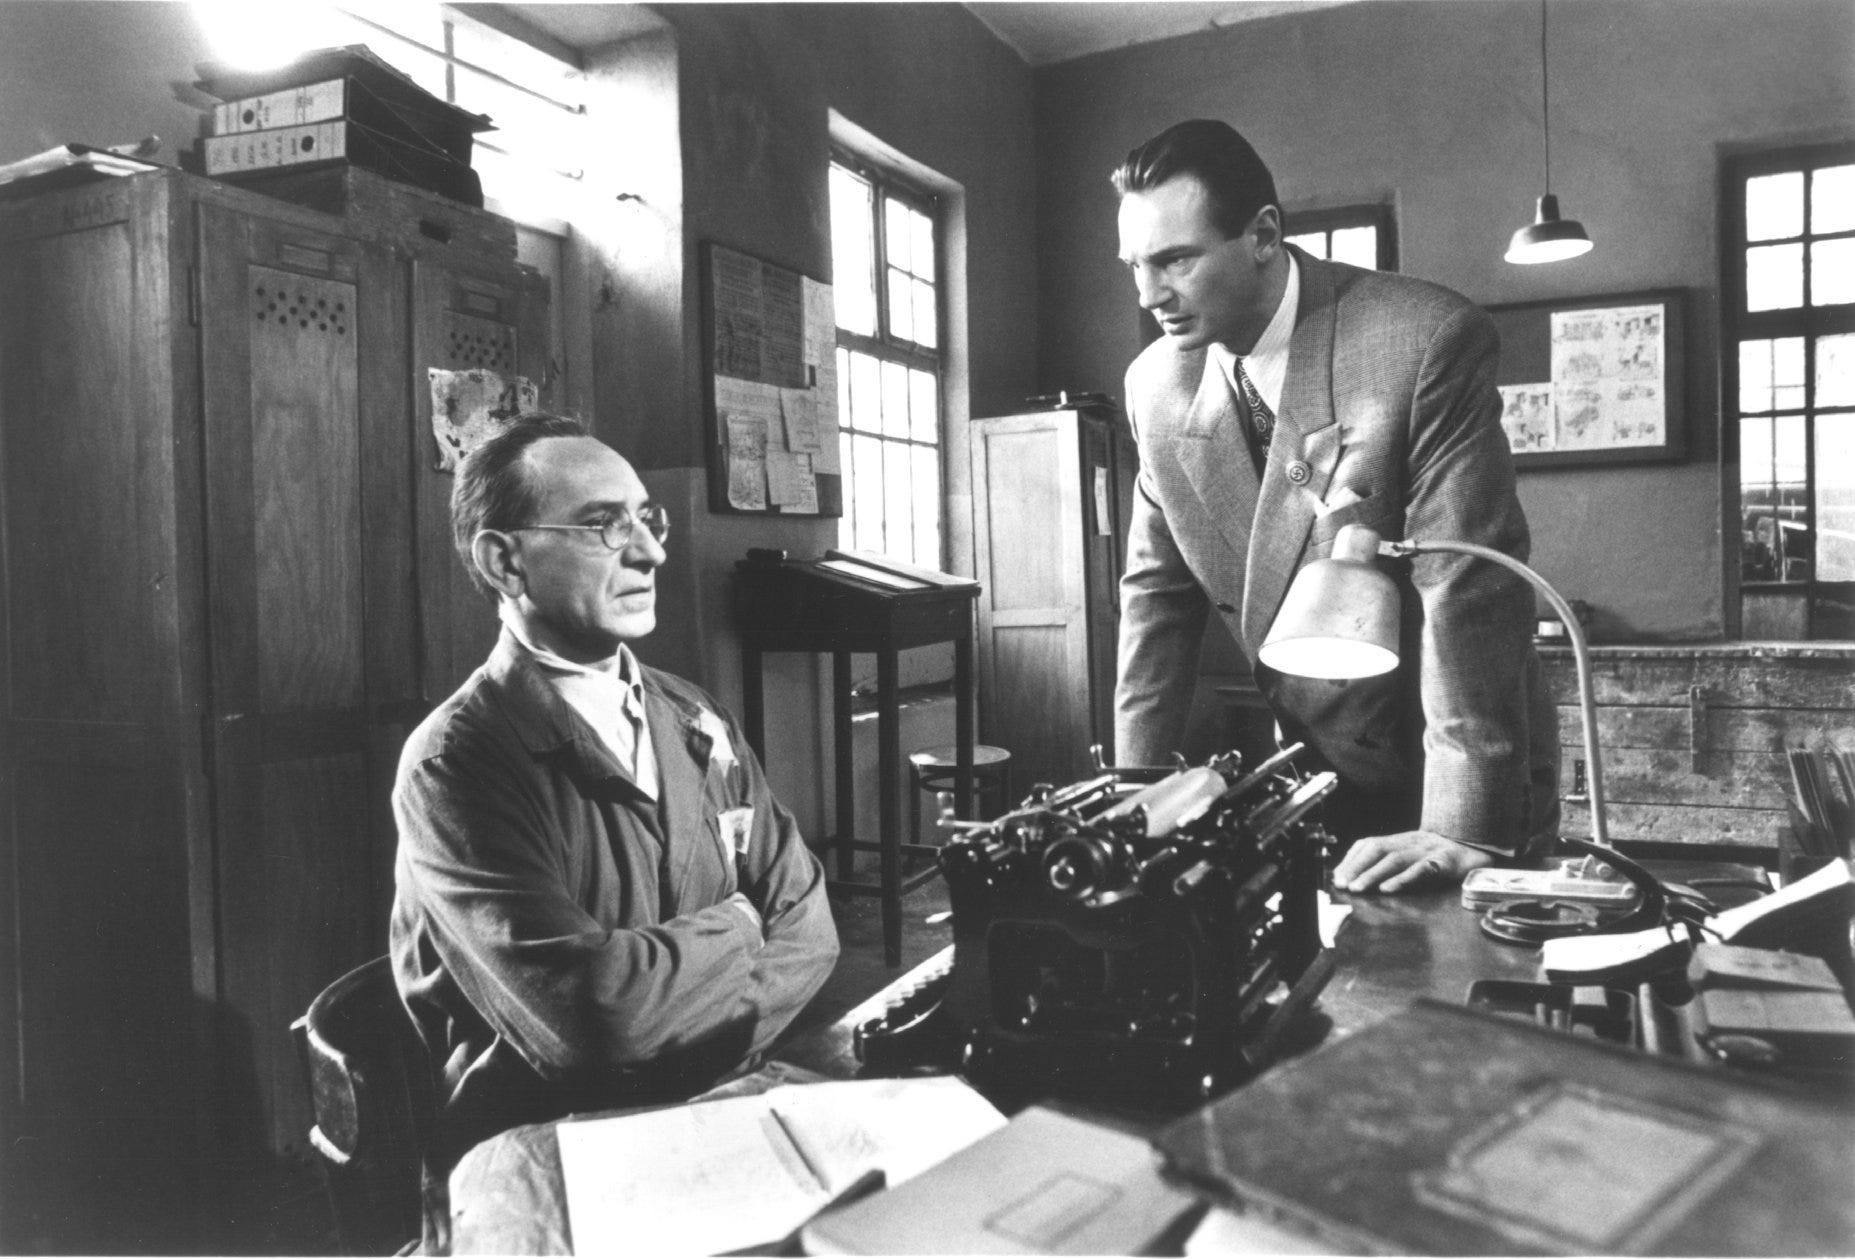 """German industrialist Oskar Schindler (Liam Neeson, right) works with clerk Itzhak Stern (Ben Kingsley) to use his factory to keep Jews out of the Nazi death machine in """"Schindler's List."""""""